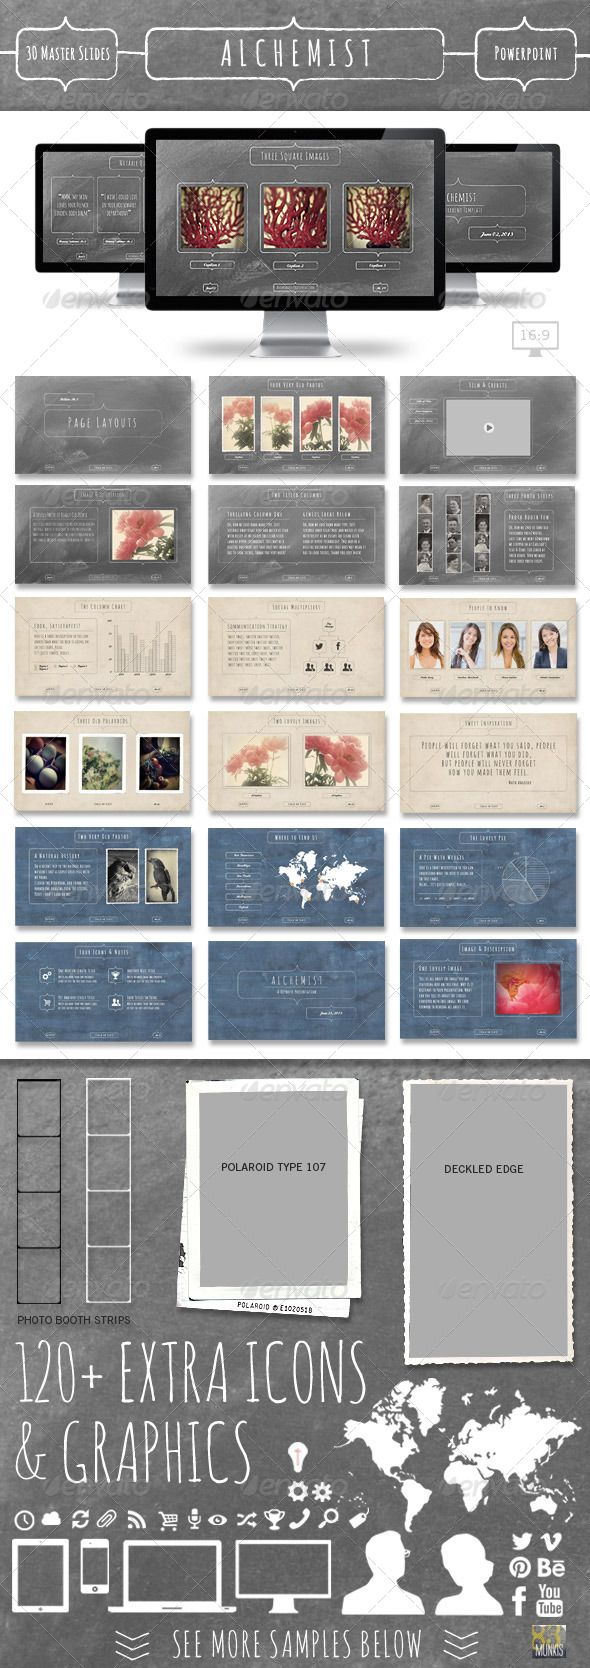 Alchemist Powerpoint Template #GraphicRiver Transform you ideas and images into a stunning presentation with the Alchemist Powerpoint